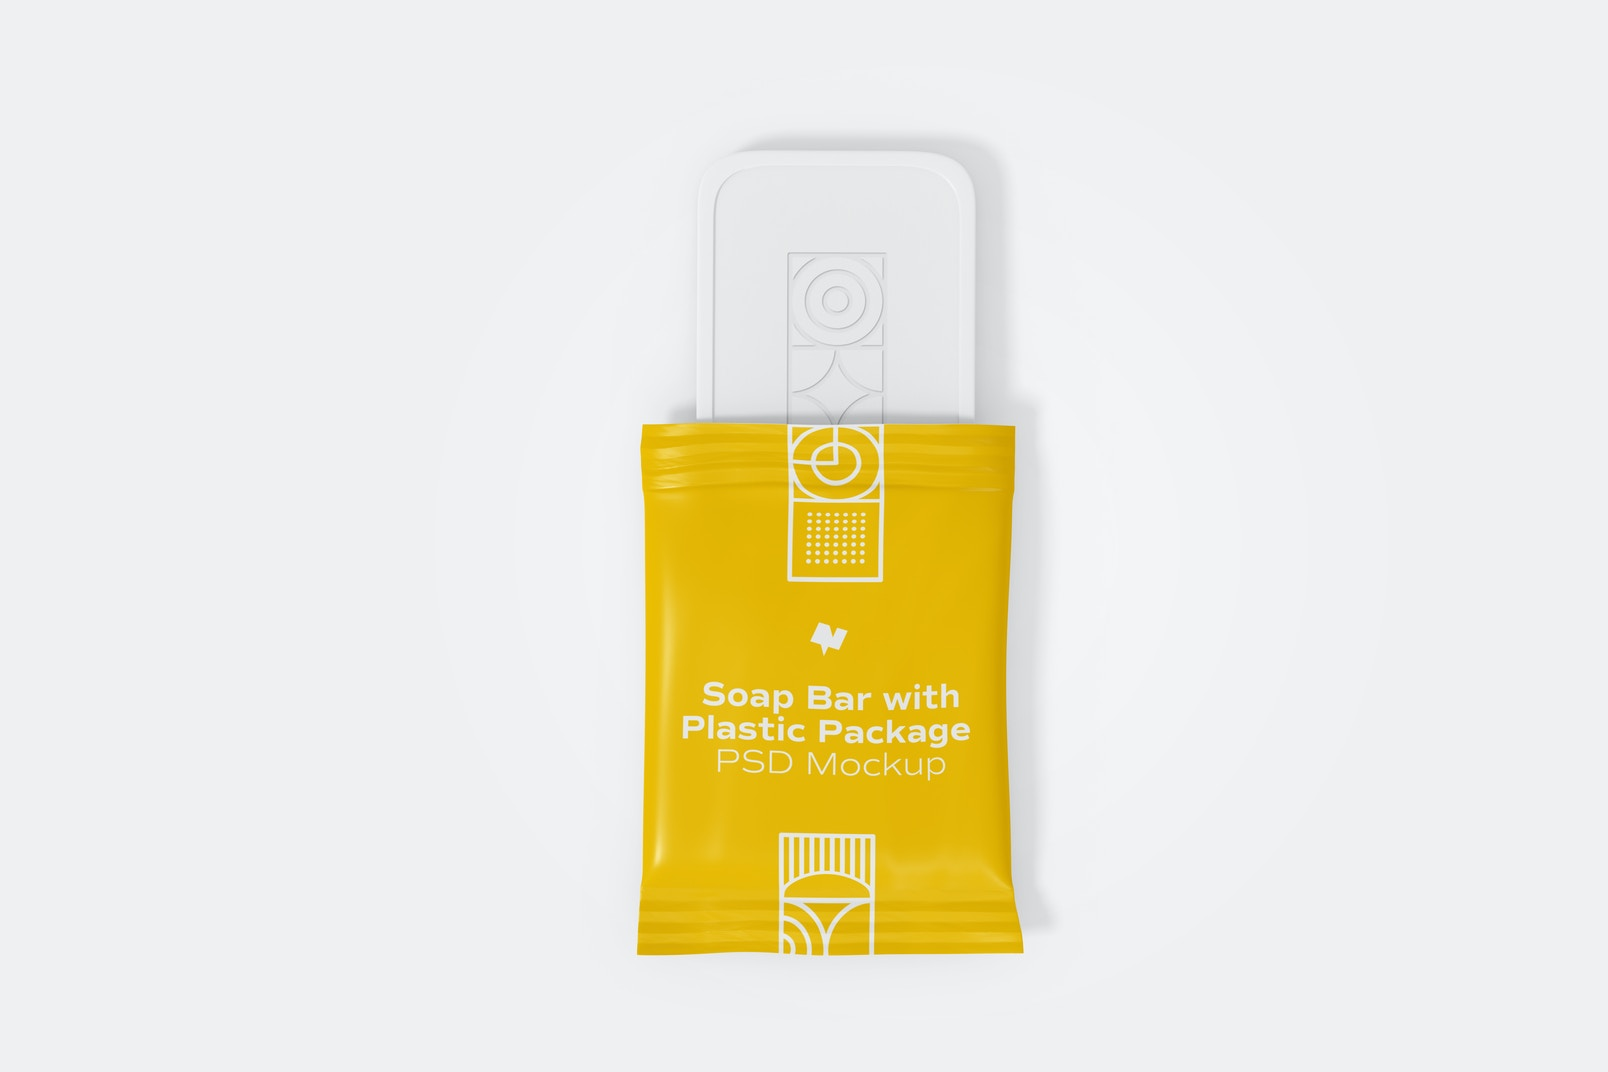 Soap Bar with Plastic Package Mockup, Opened